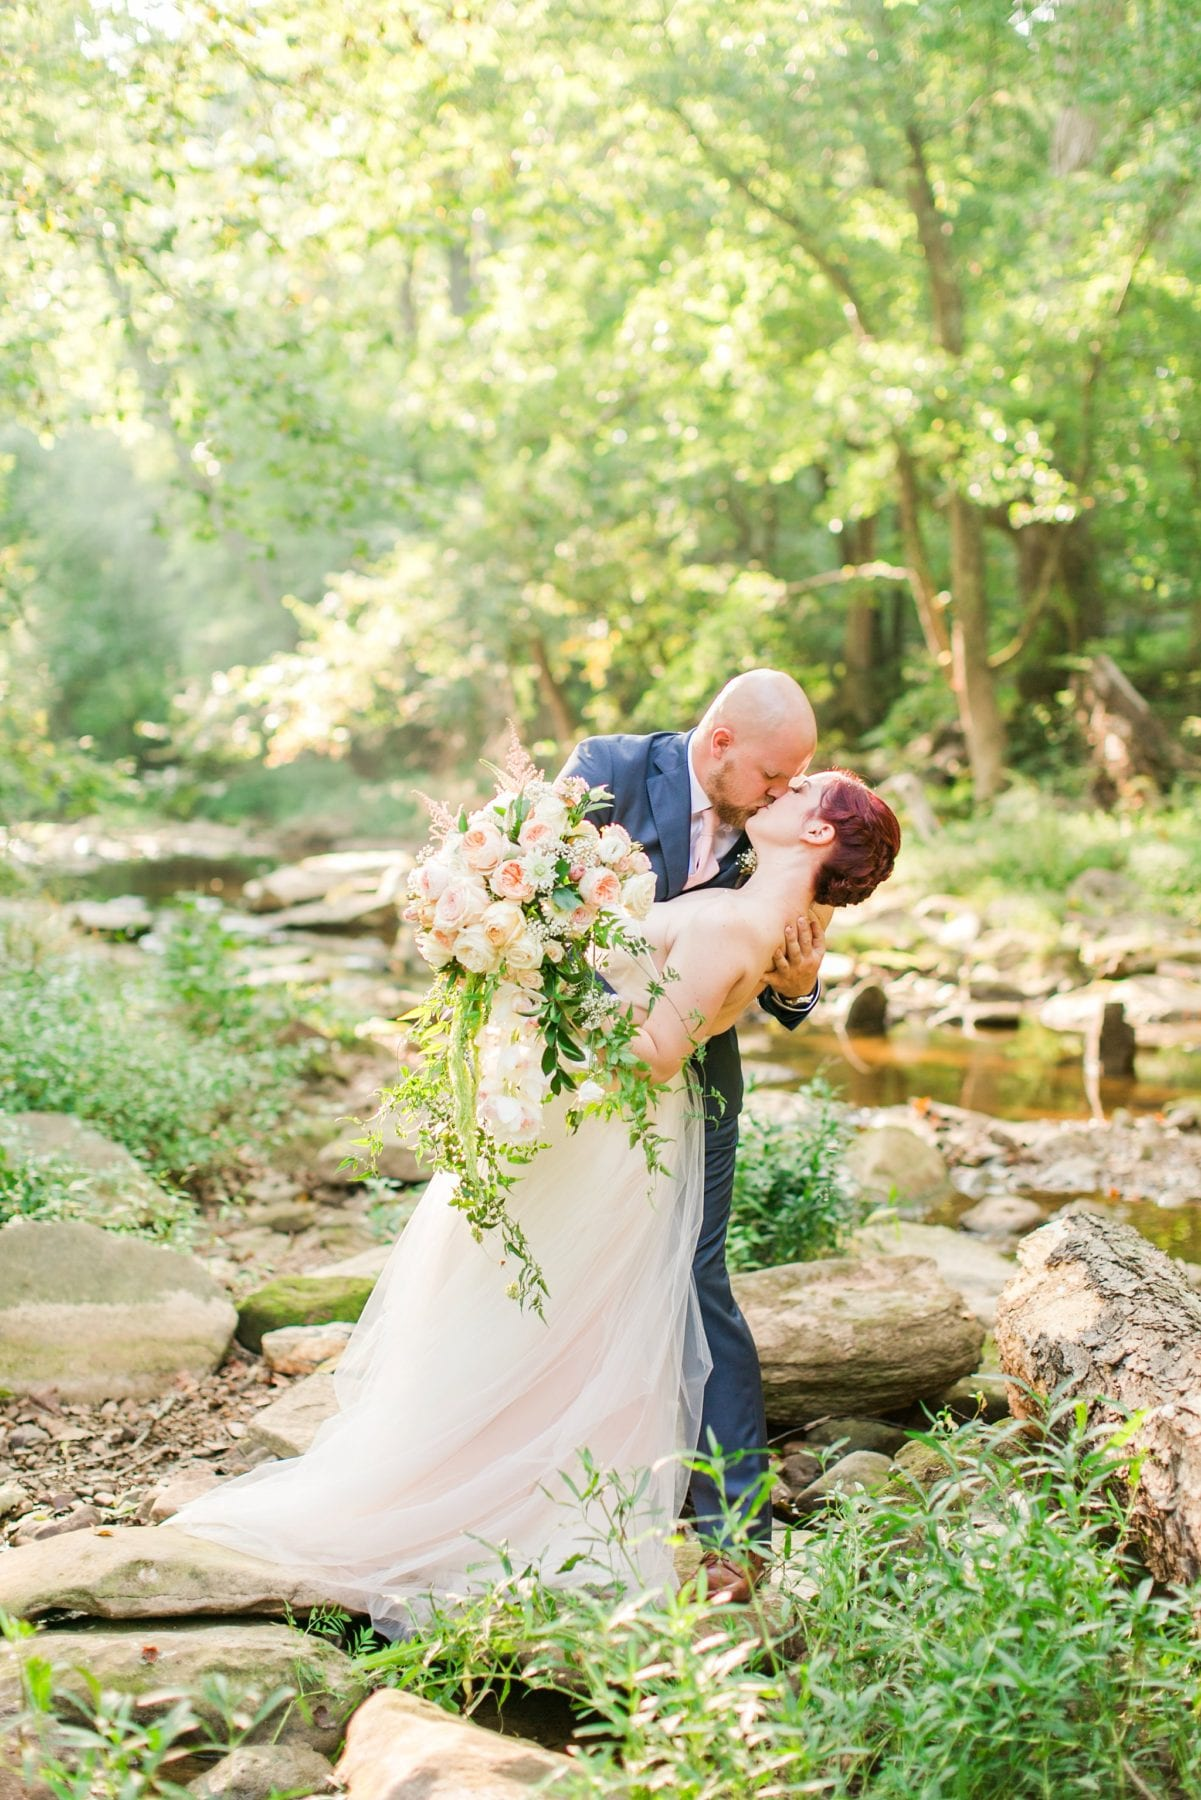 Rocklands Farm Wedding Virginia Wedding Photographer Megan Kelsey Photography Jessica & Jason-67.jpg